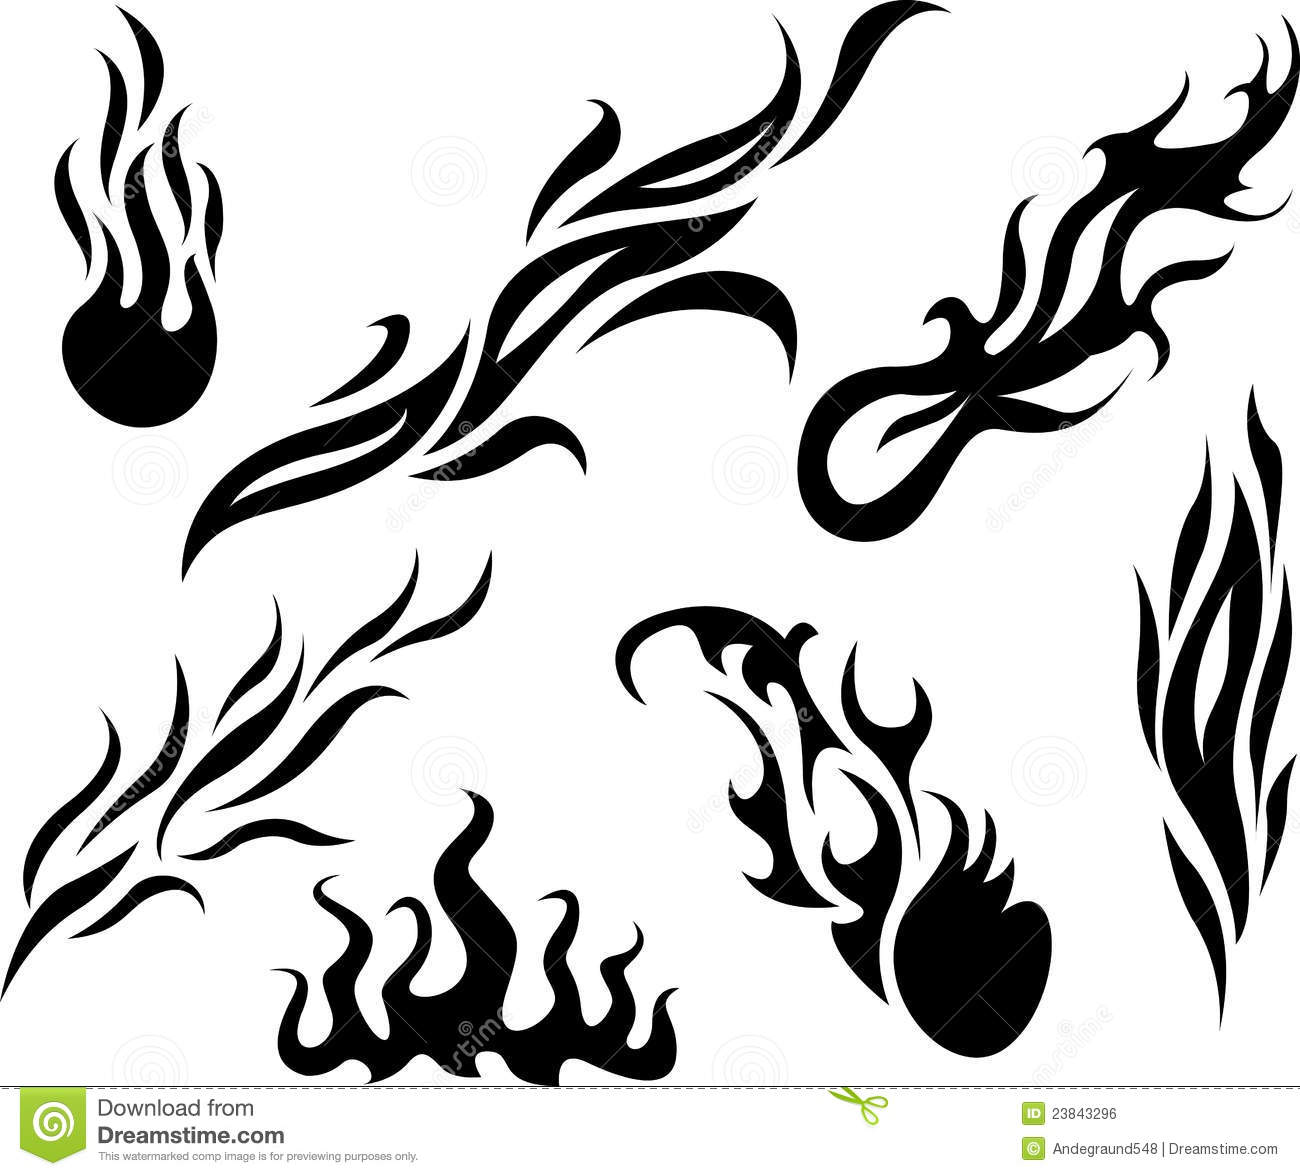 3 Simple Tribal Flame Tattoo Designs And Ideas